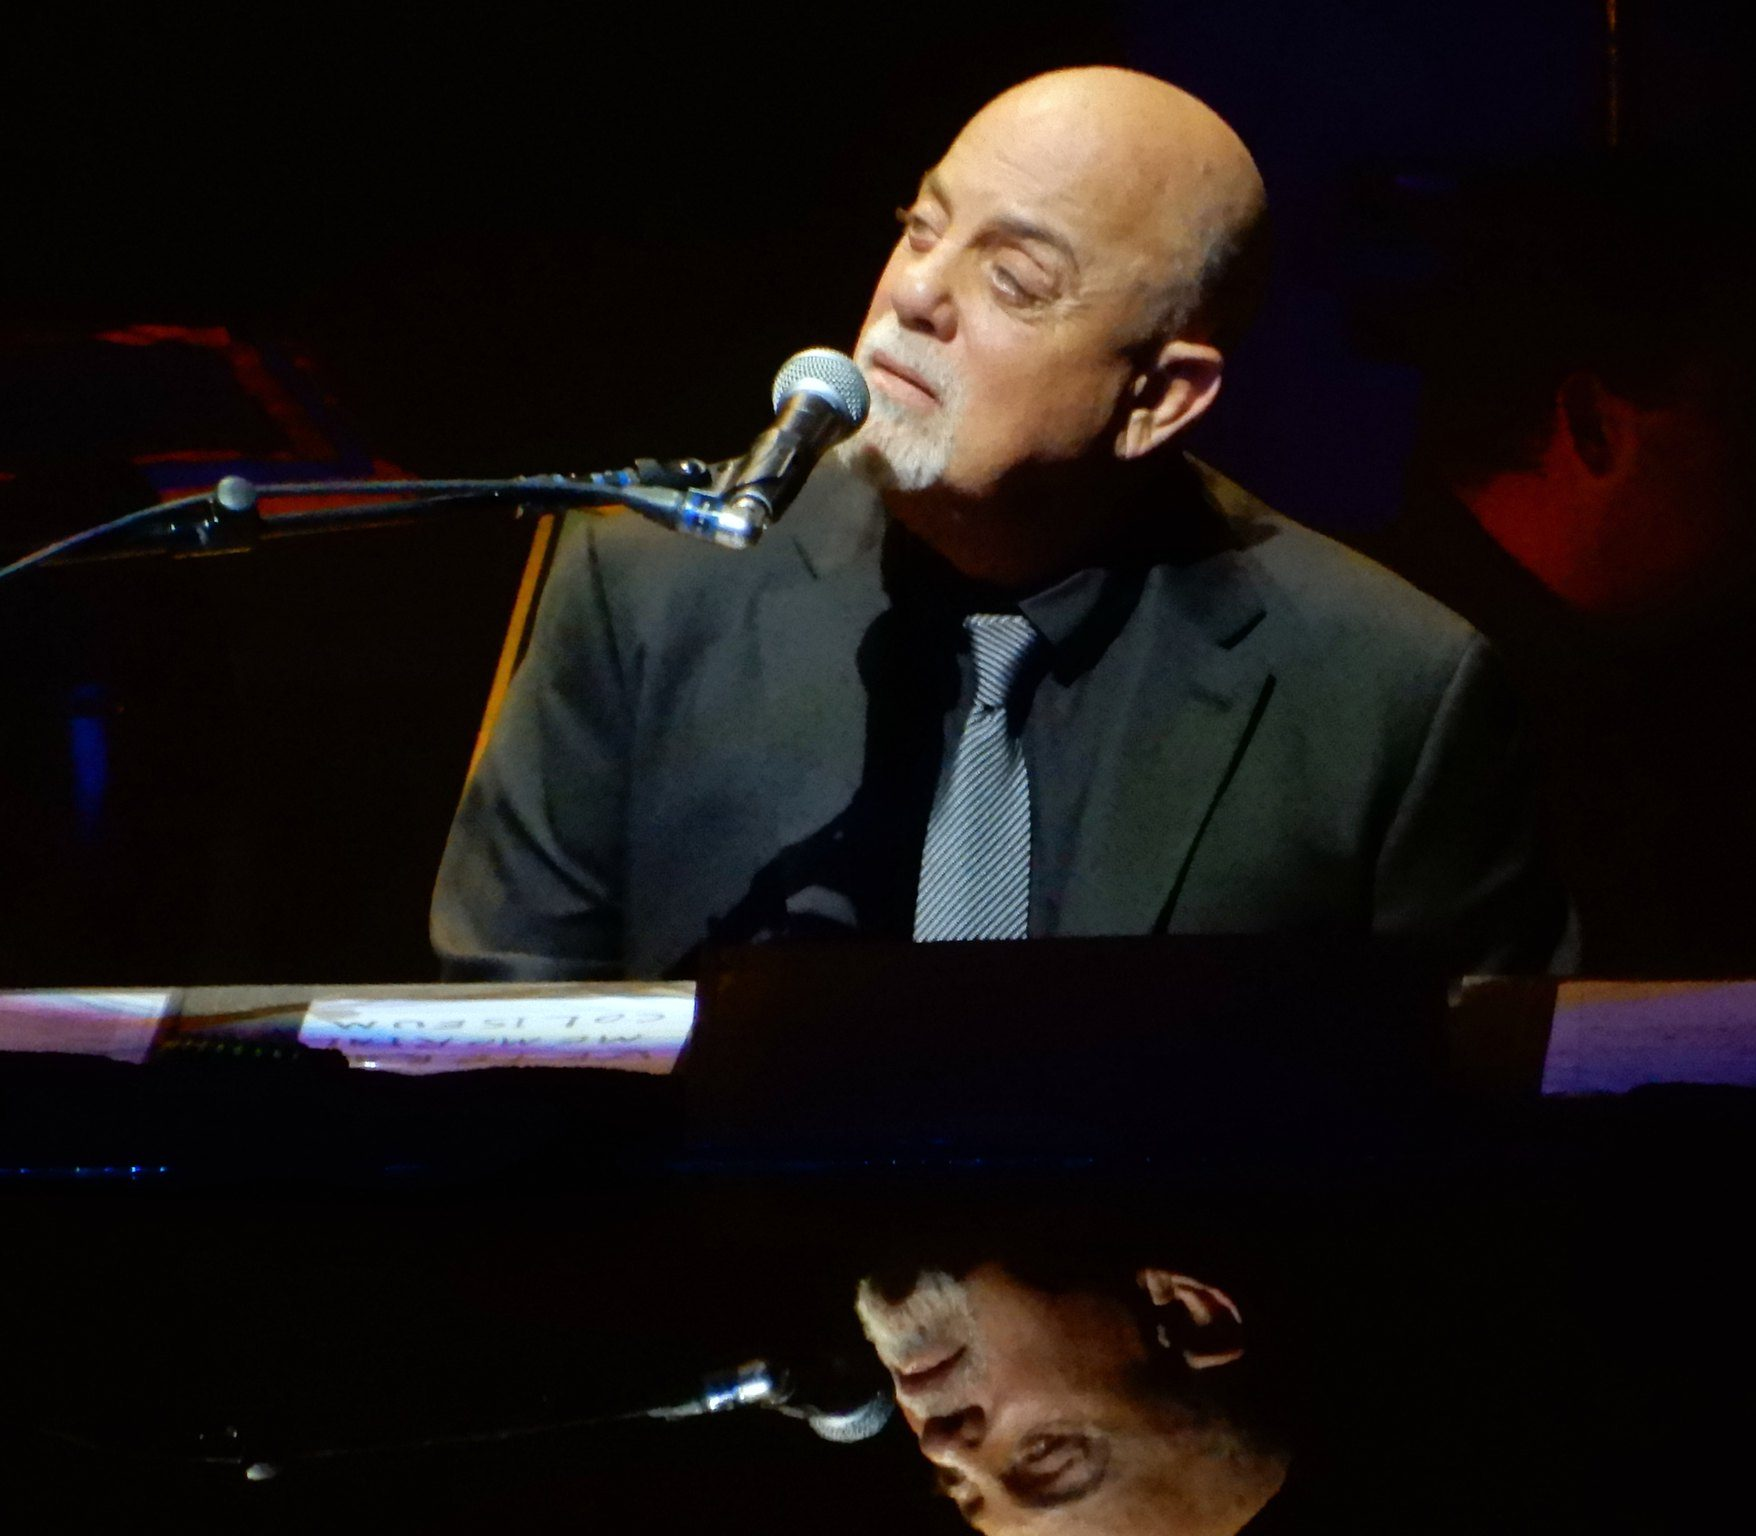 33063330983 4ebdbd32aa k e1621415010252 20 Things You Probably Didn't Know About Billy Joel